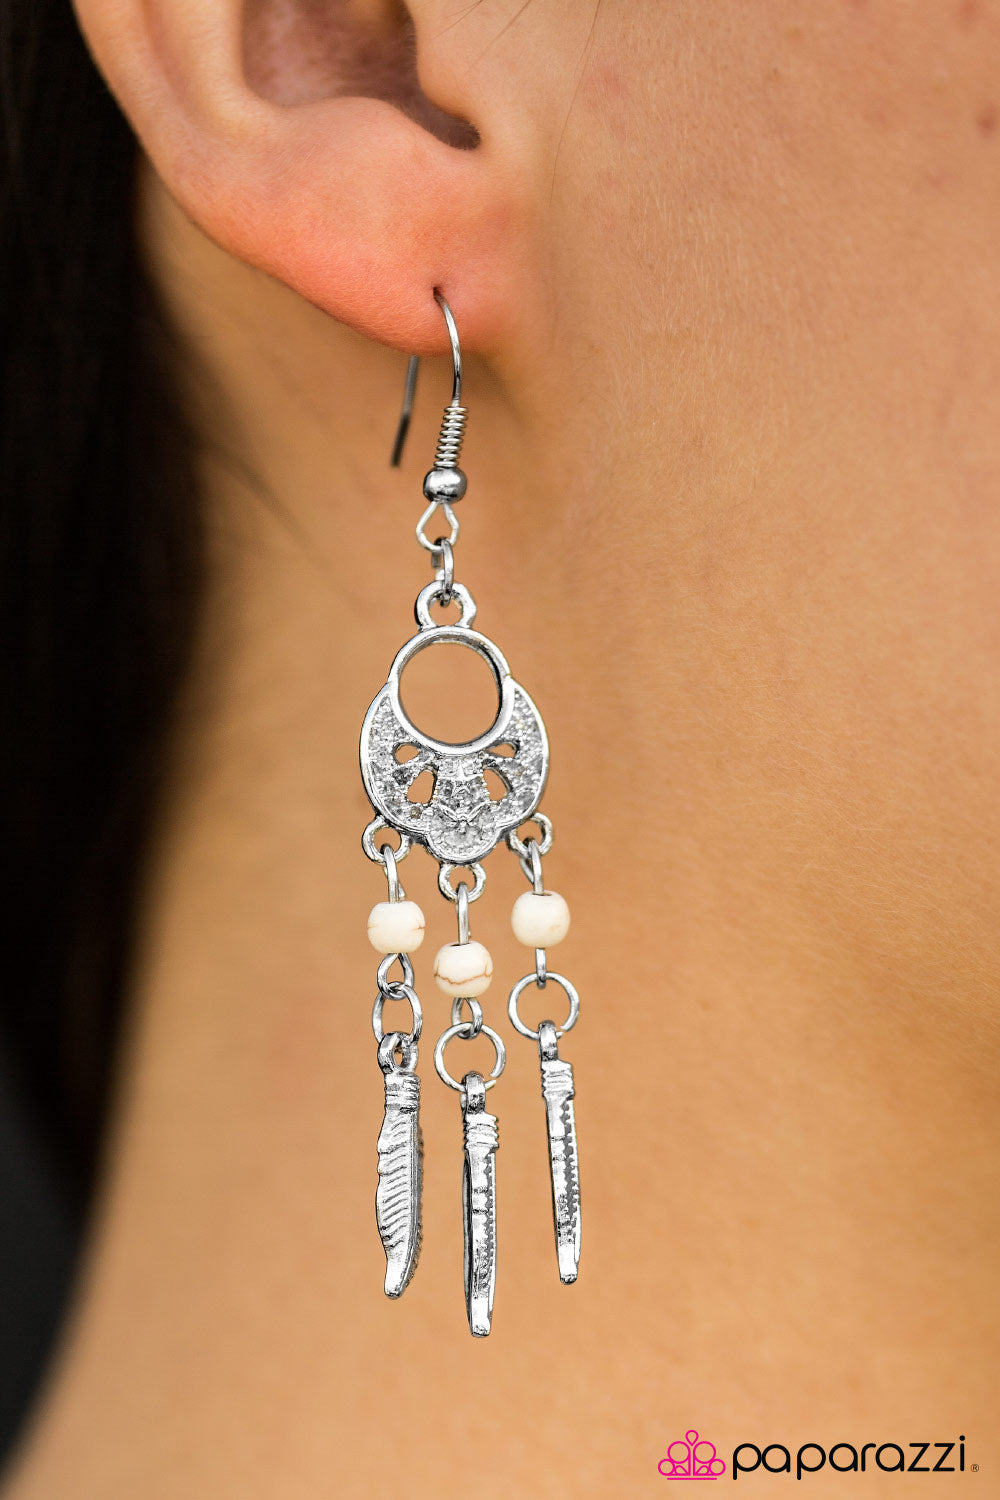 Dakota Dreams - White - Paparazzi earrings